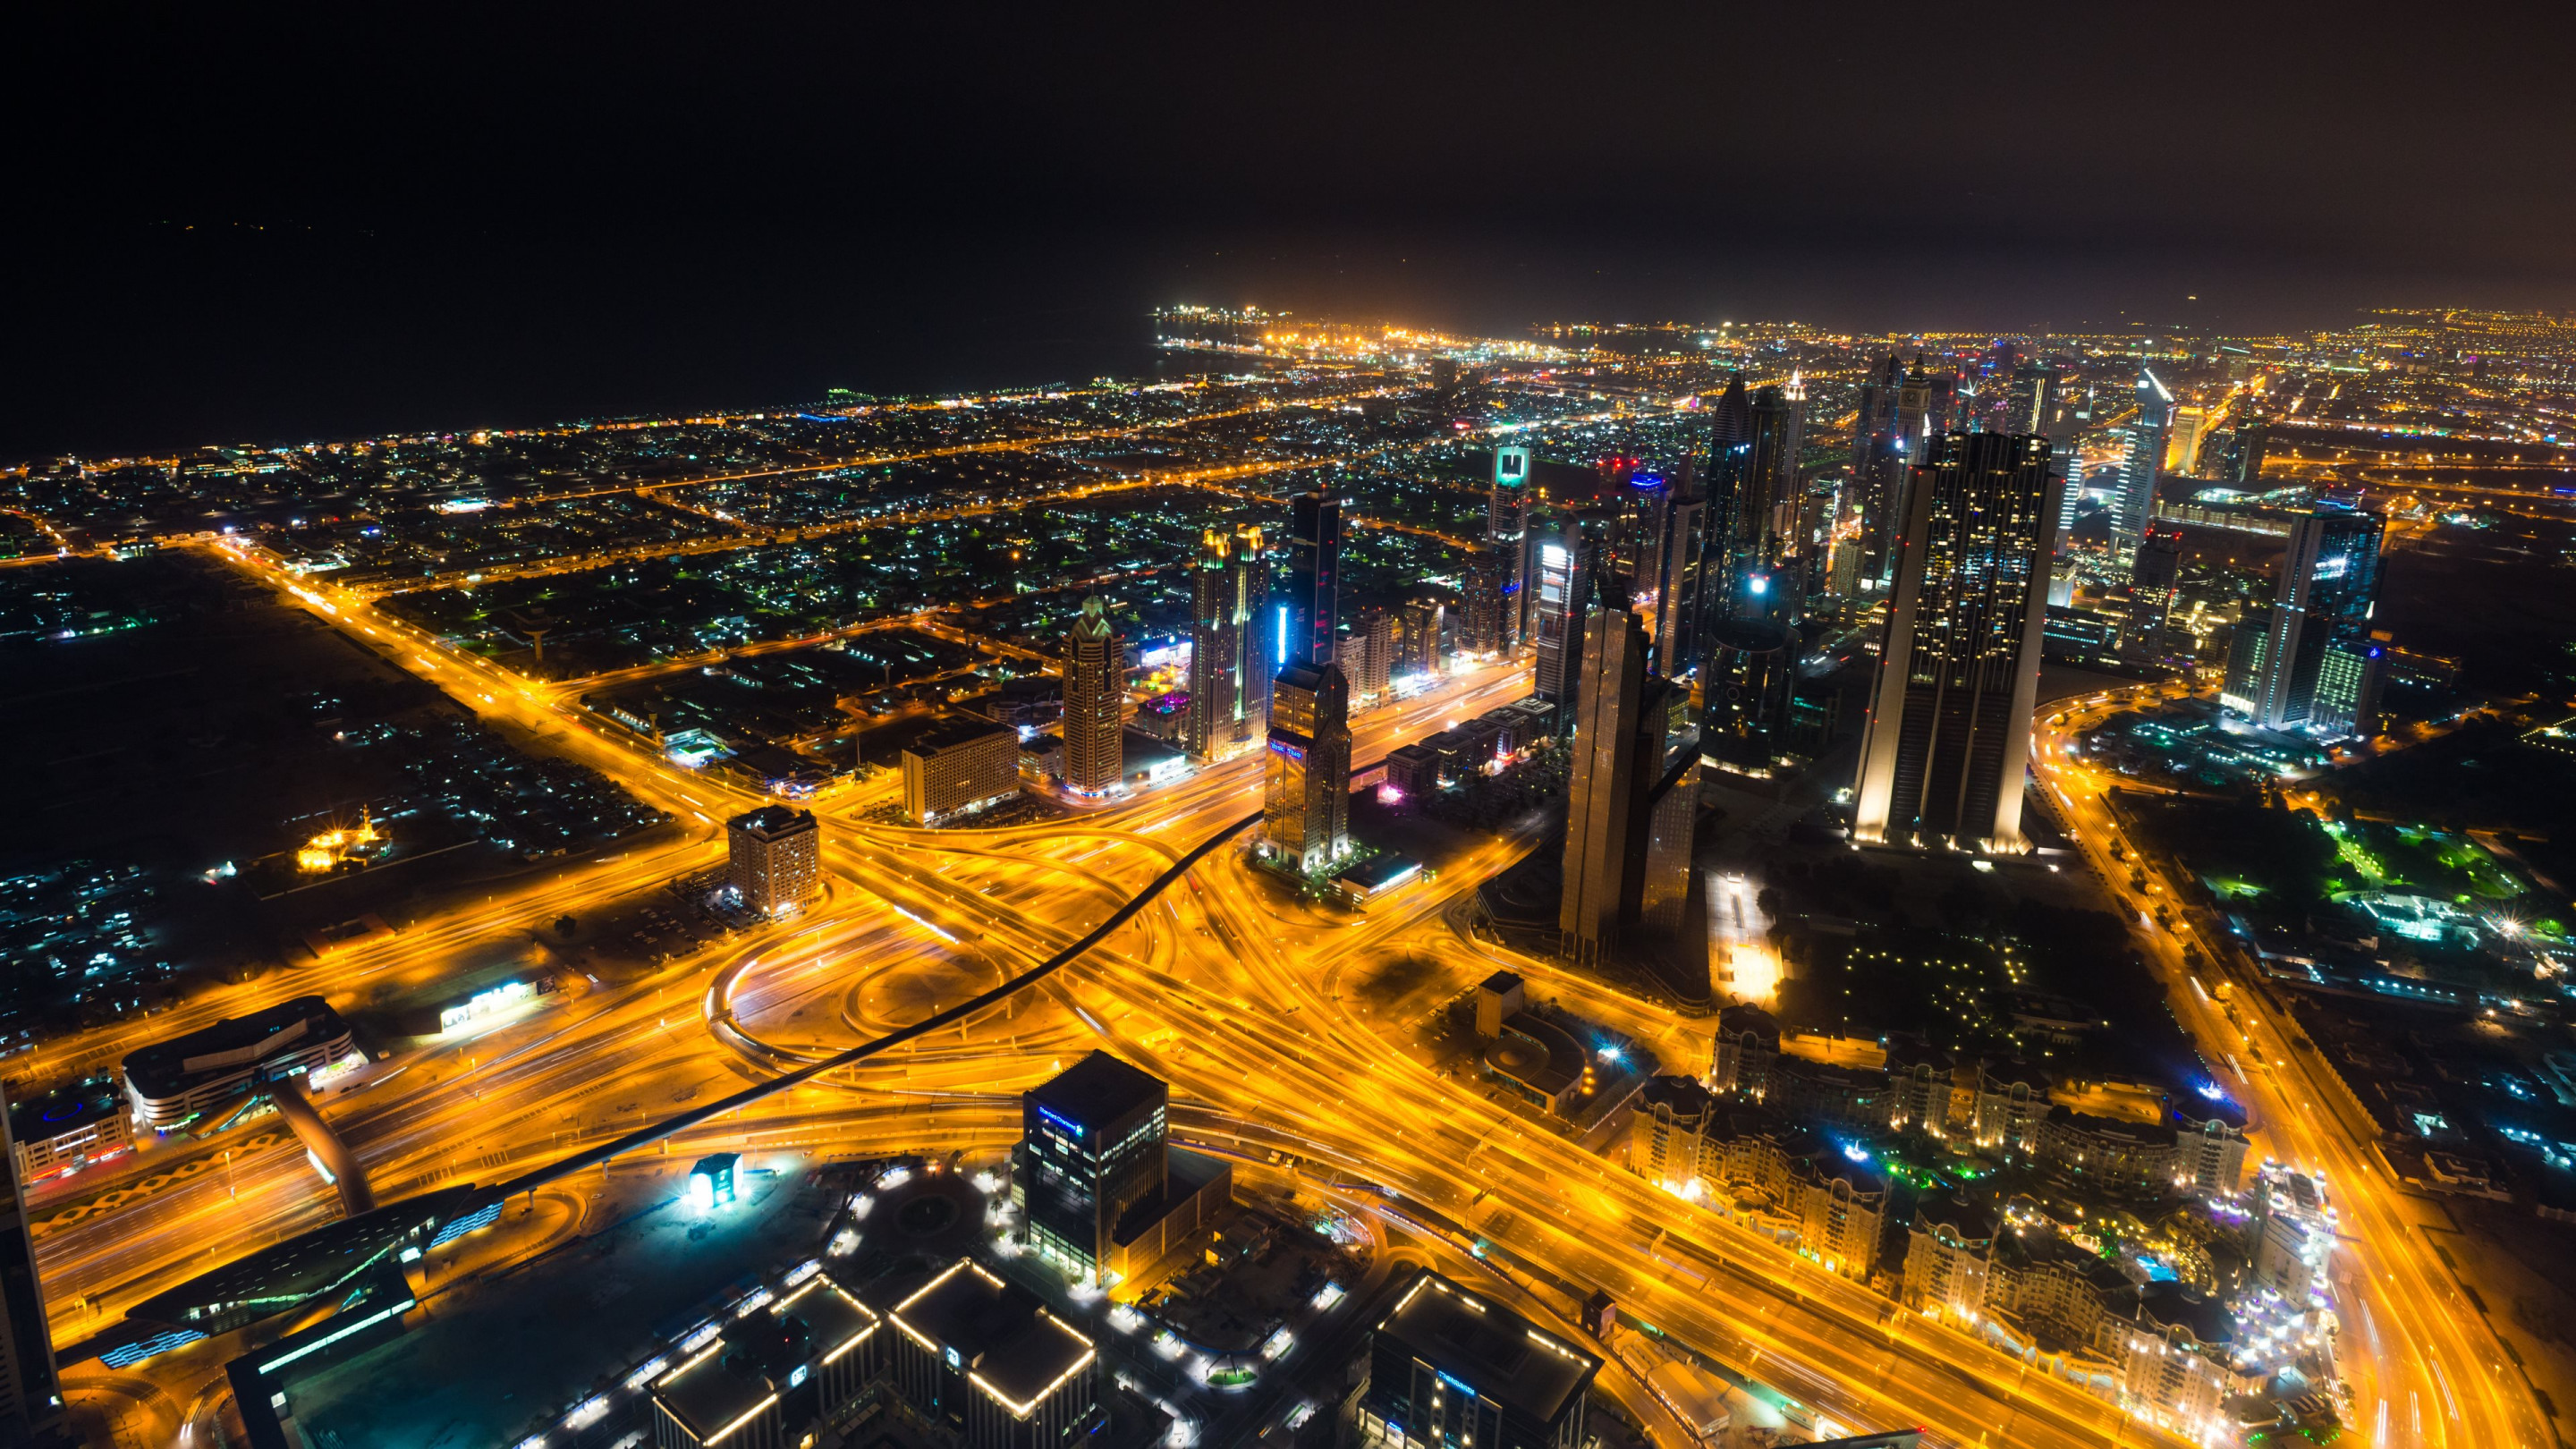 Dubai landscape by night | 2880x1620 wallpaper